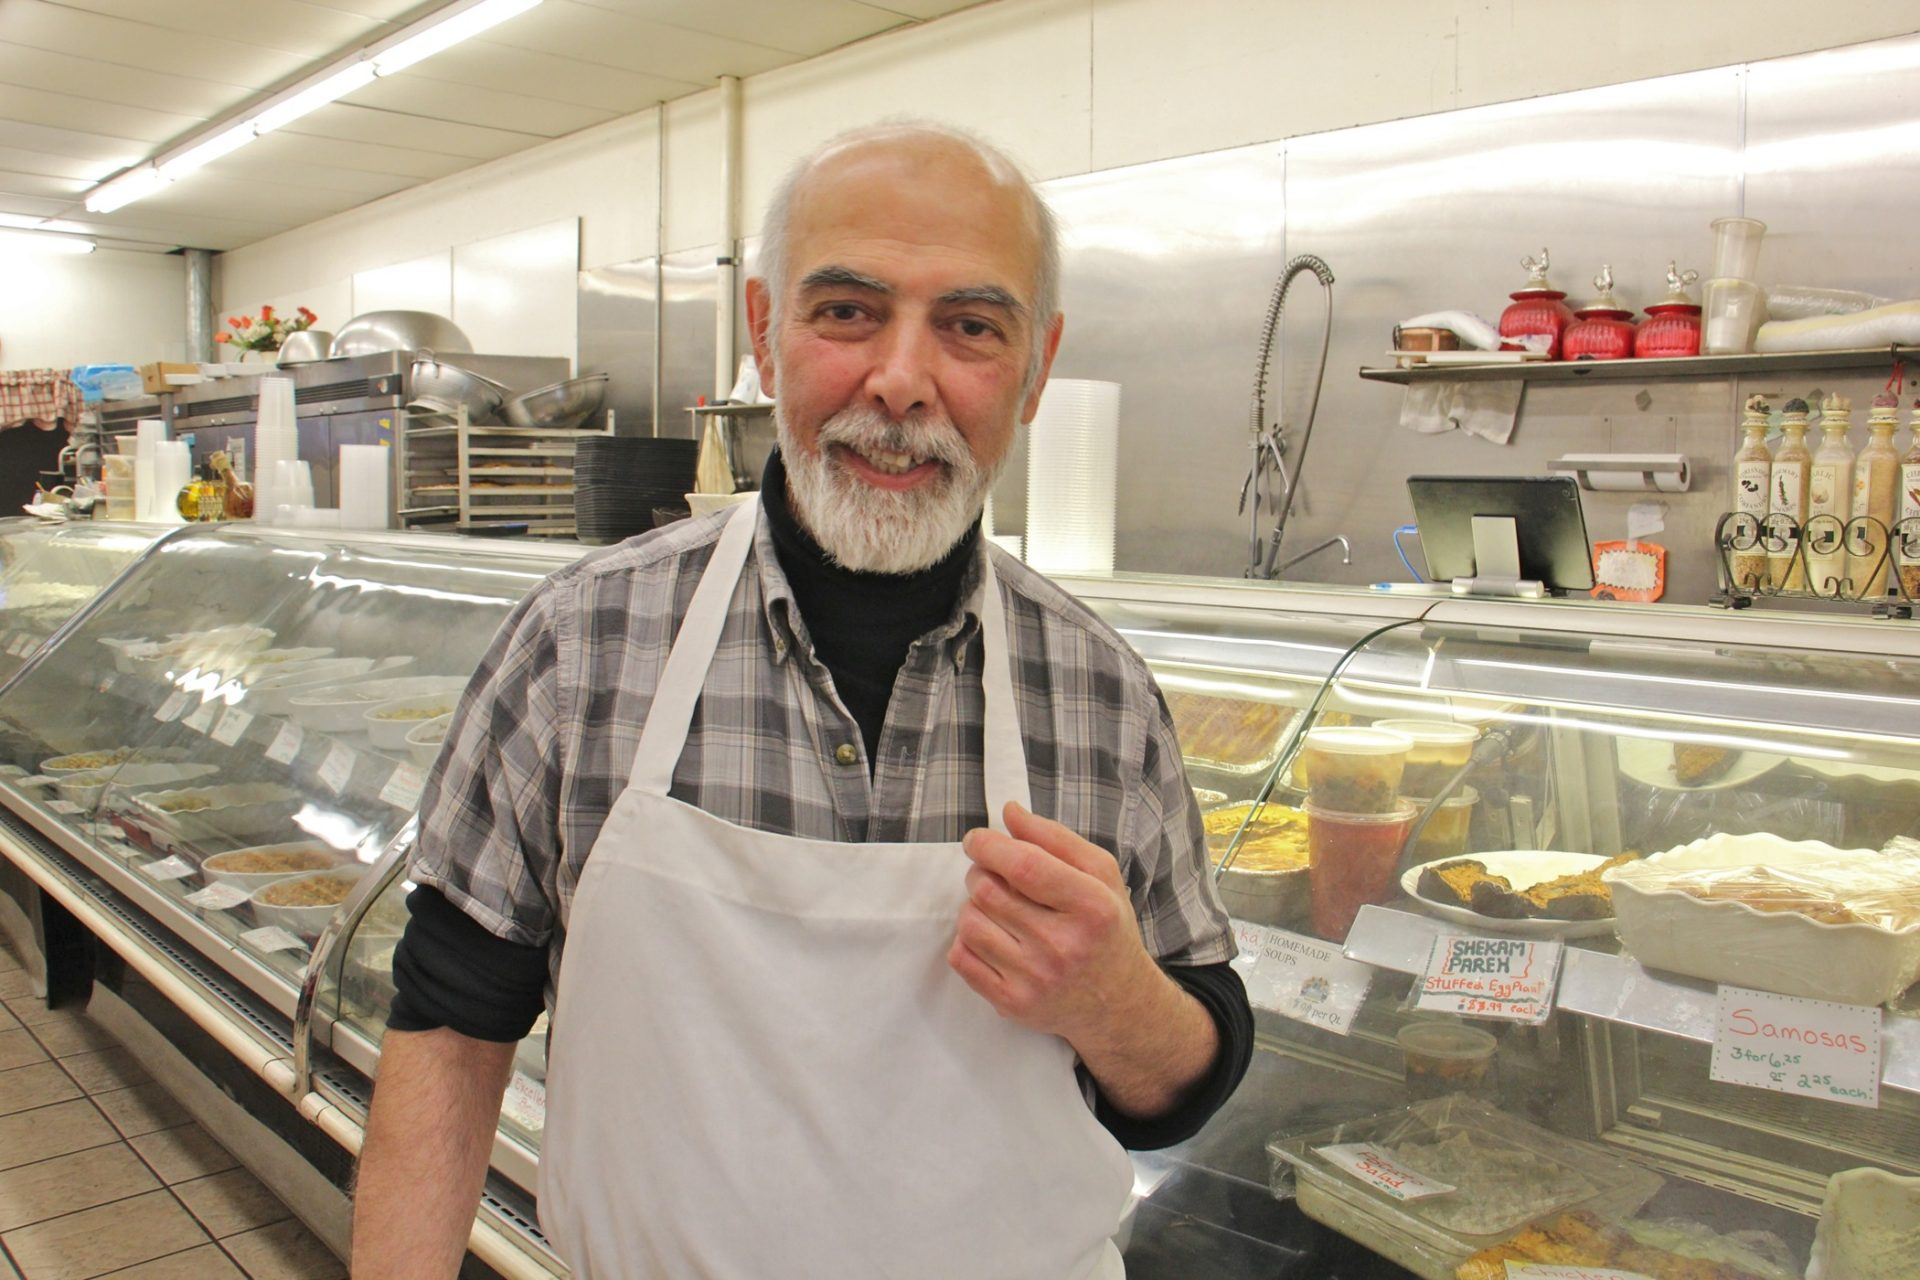 Fredoun Rashidian, 67, proprietor of the Caspian Grille in Lafayette Hill, came to the United States from Iran in 1979.